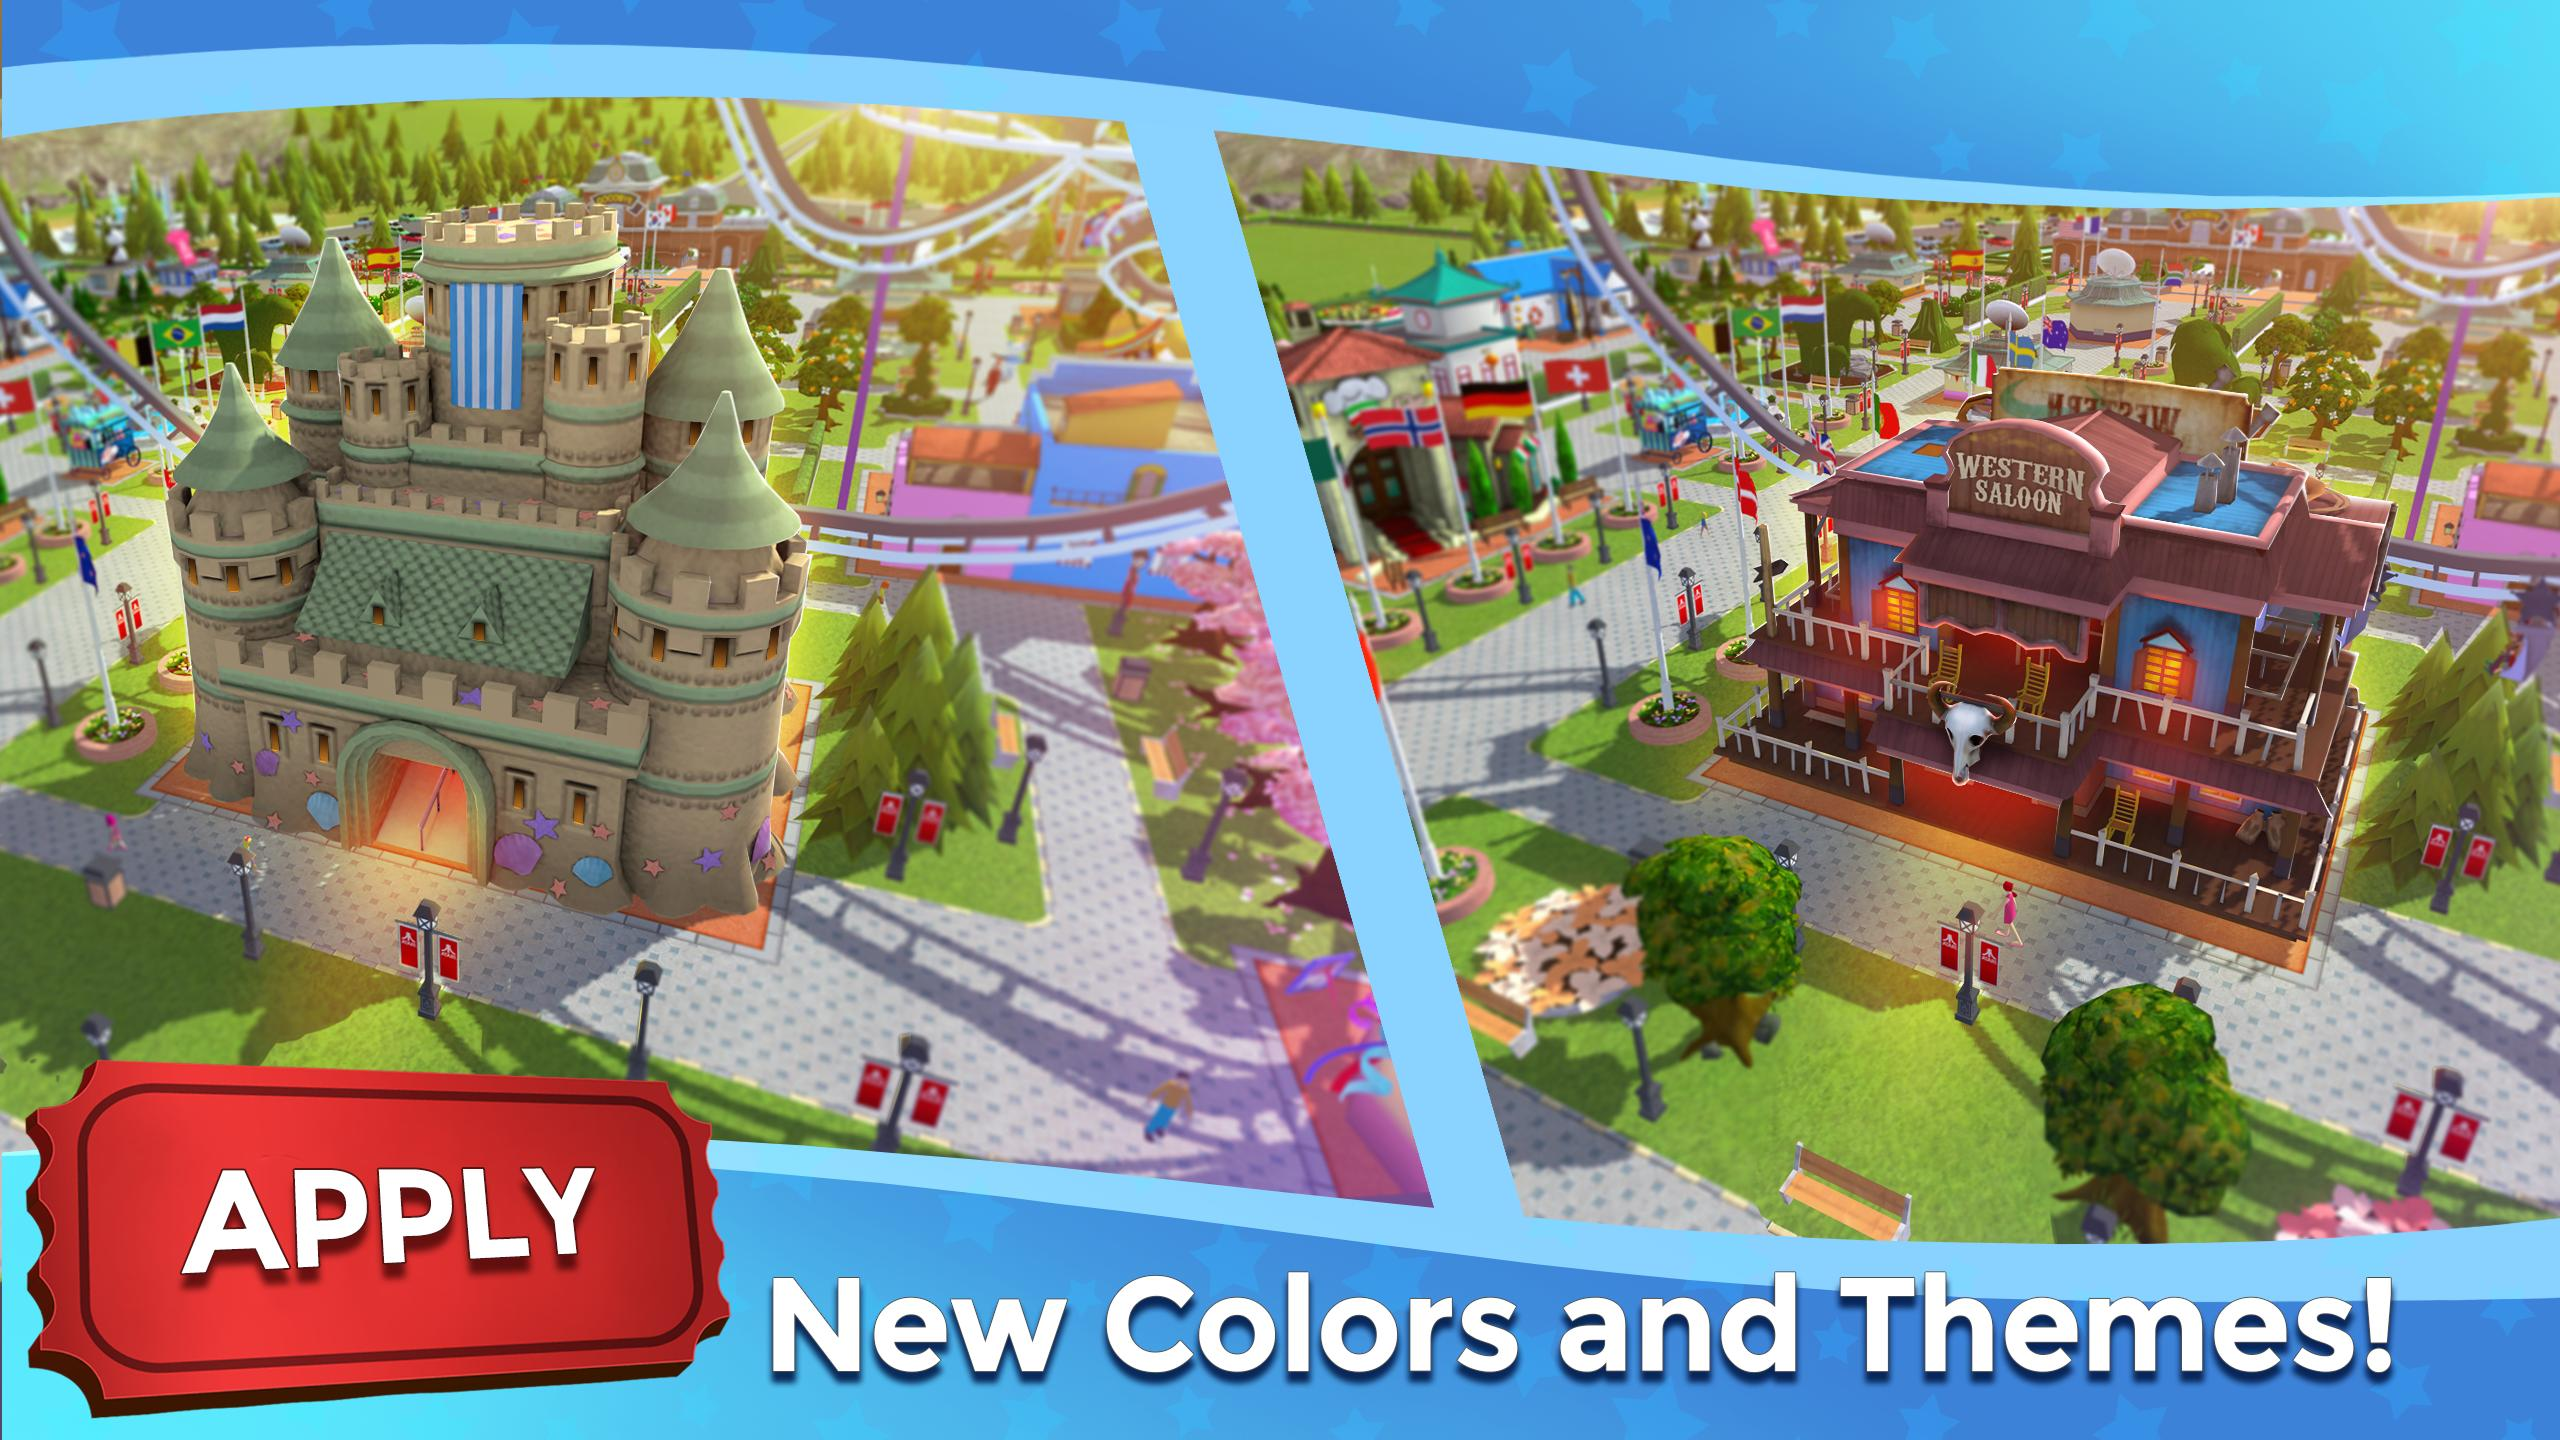 RollerCoaster Tycoon Touch - Build your Theme Park 3.5.0 Screenshot 5